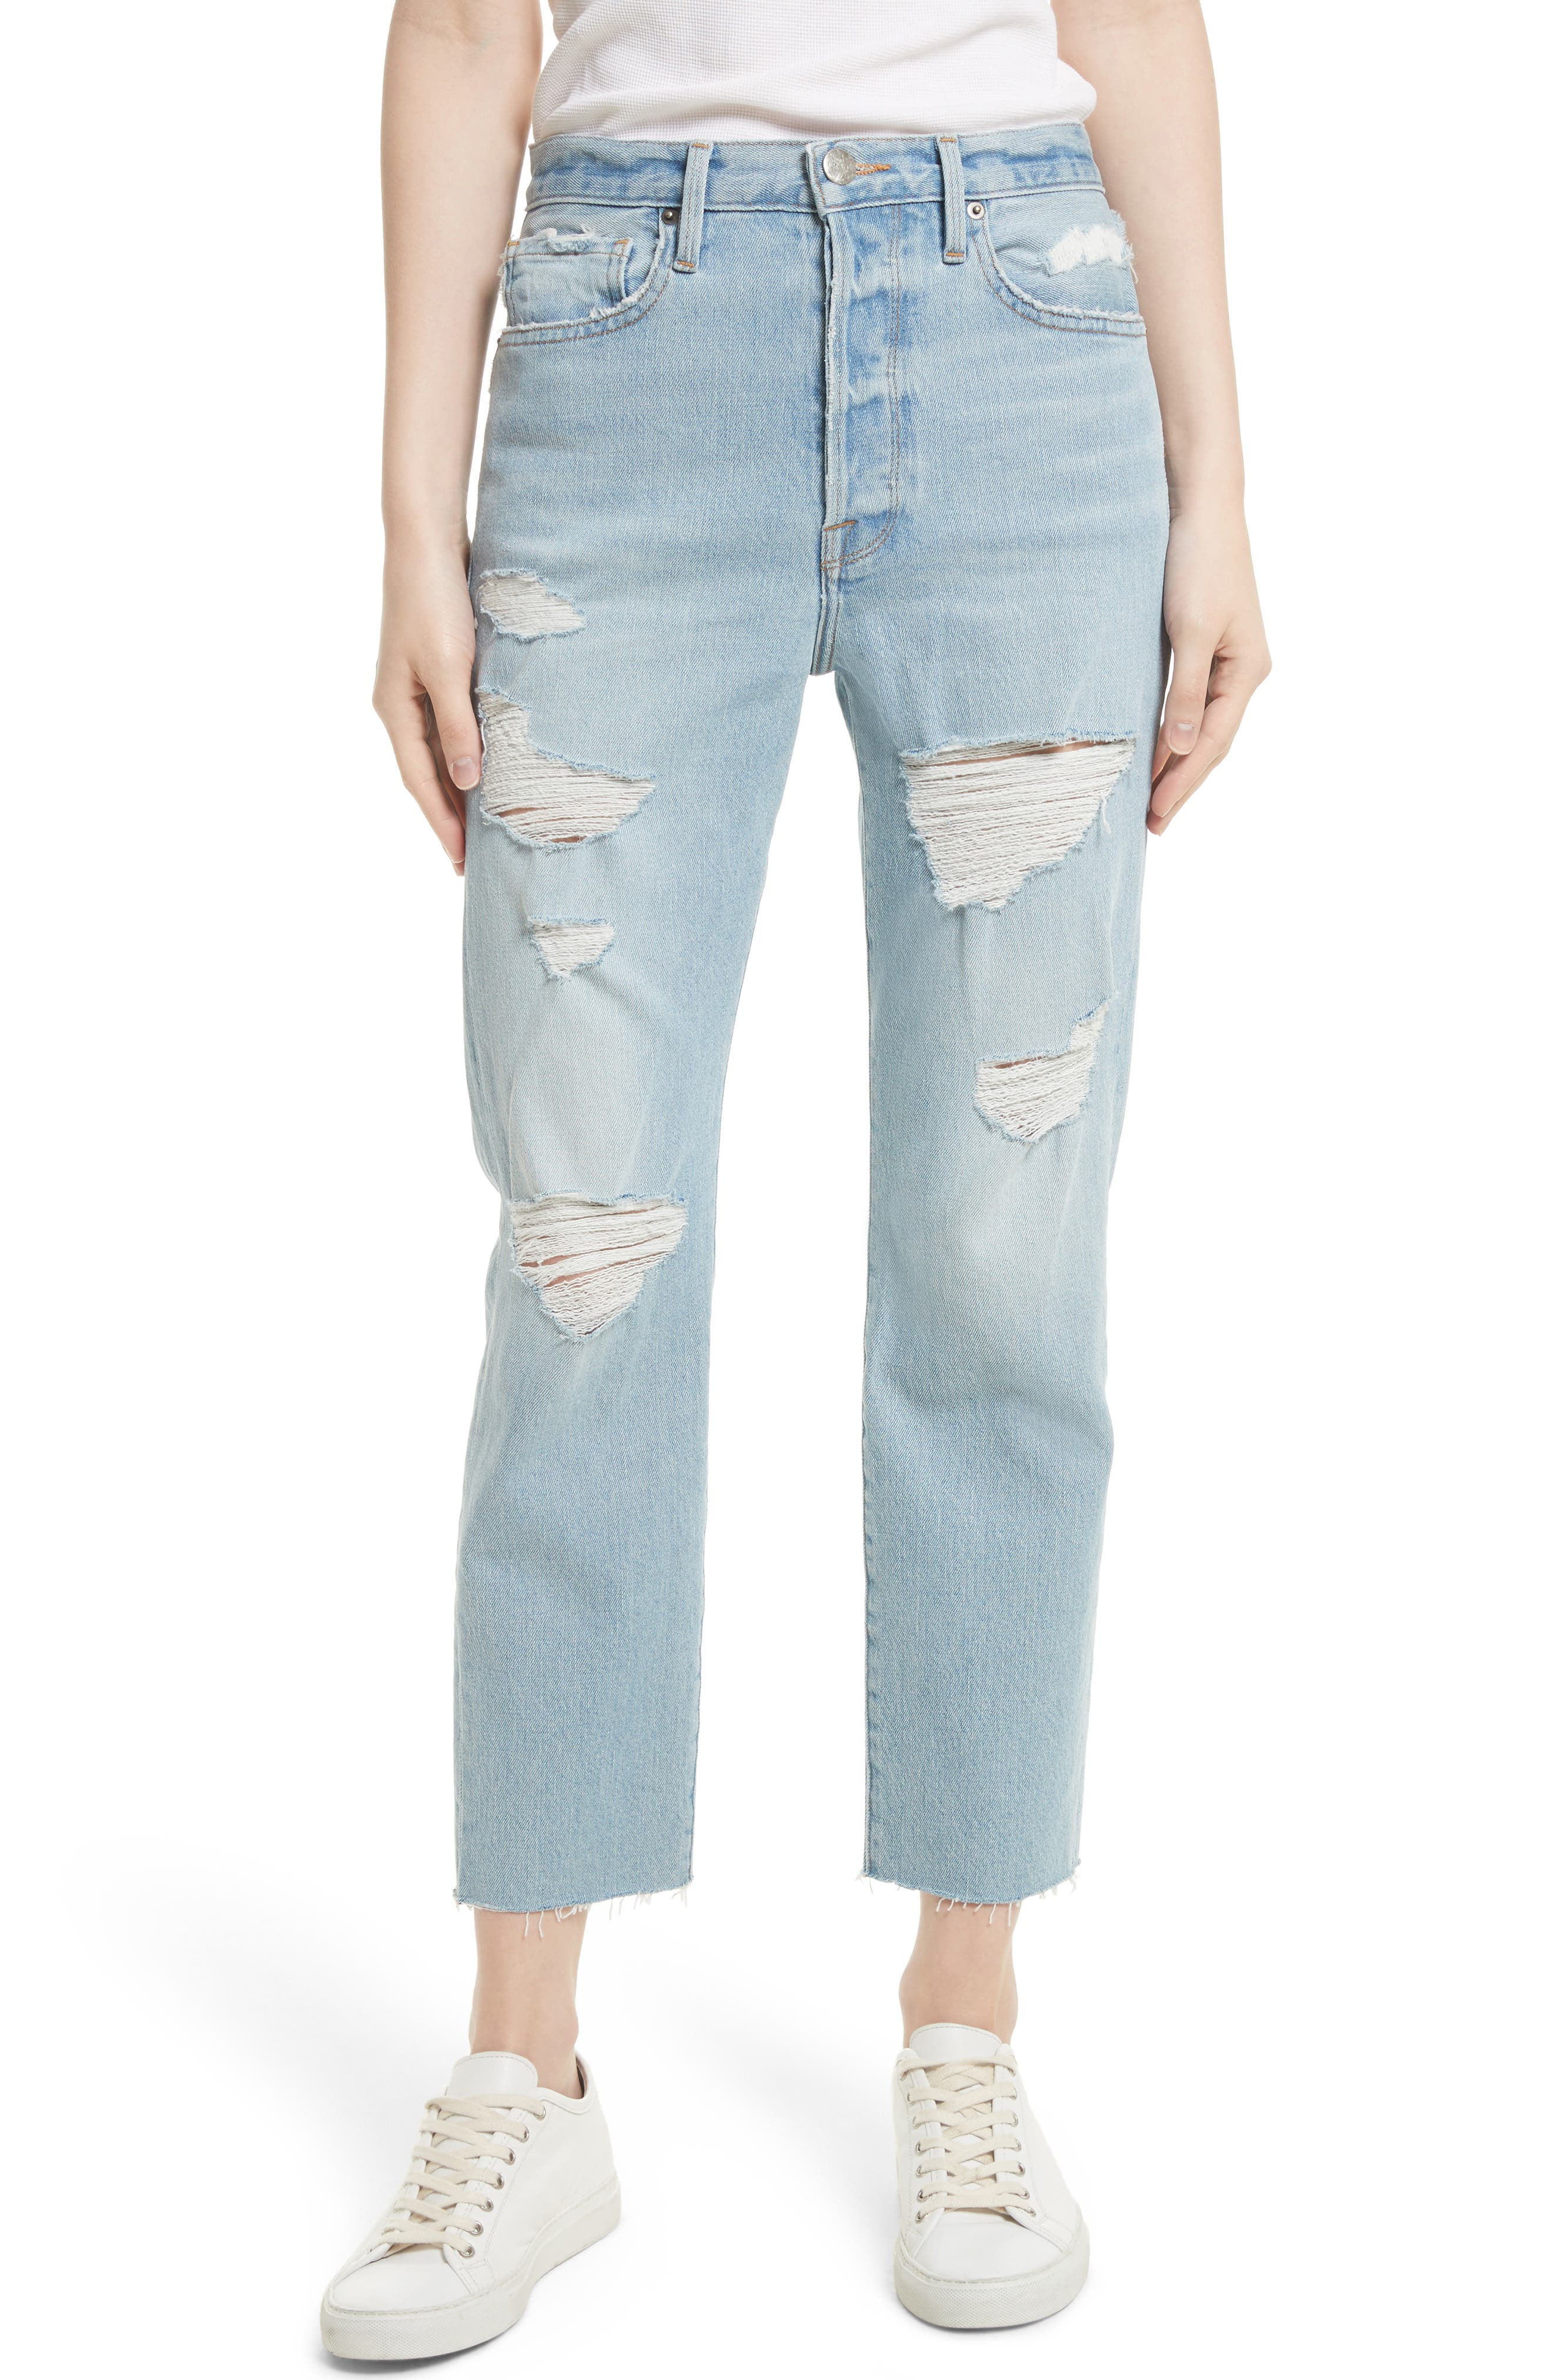 Le Original Raw Edge High Waist Jeans,                         Main,                         color, 450